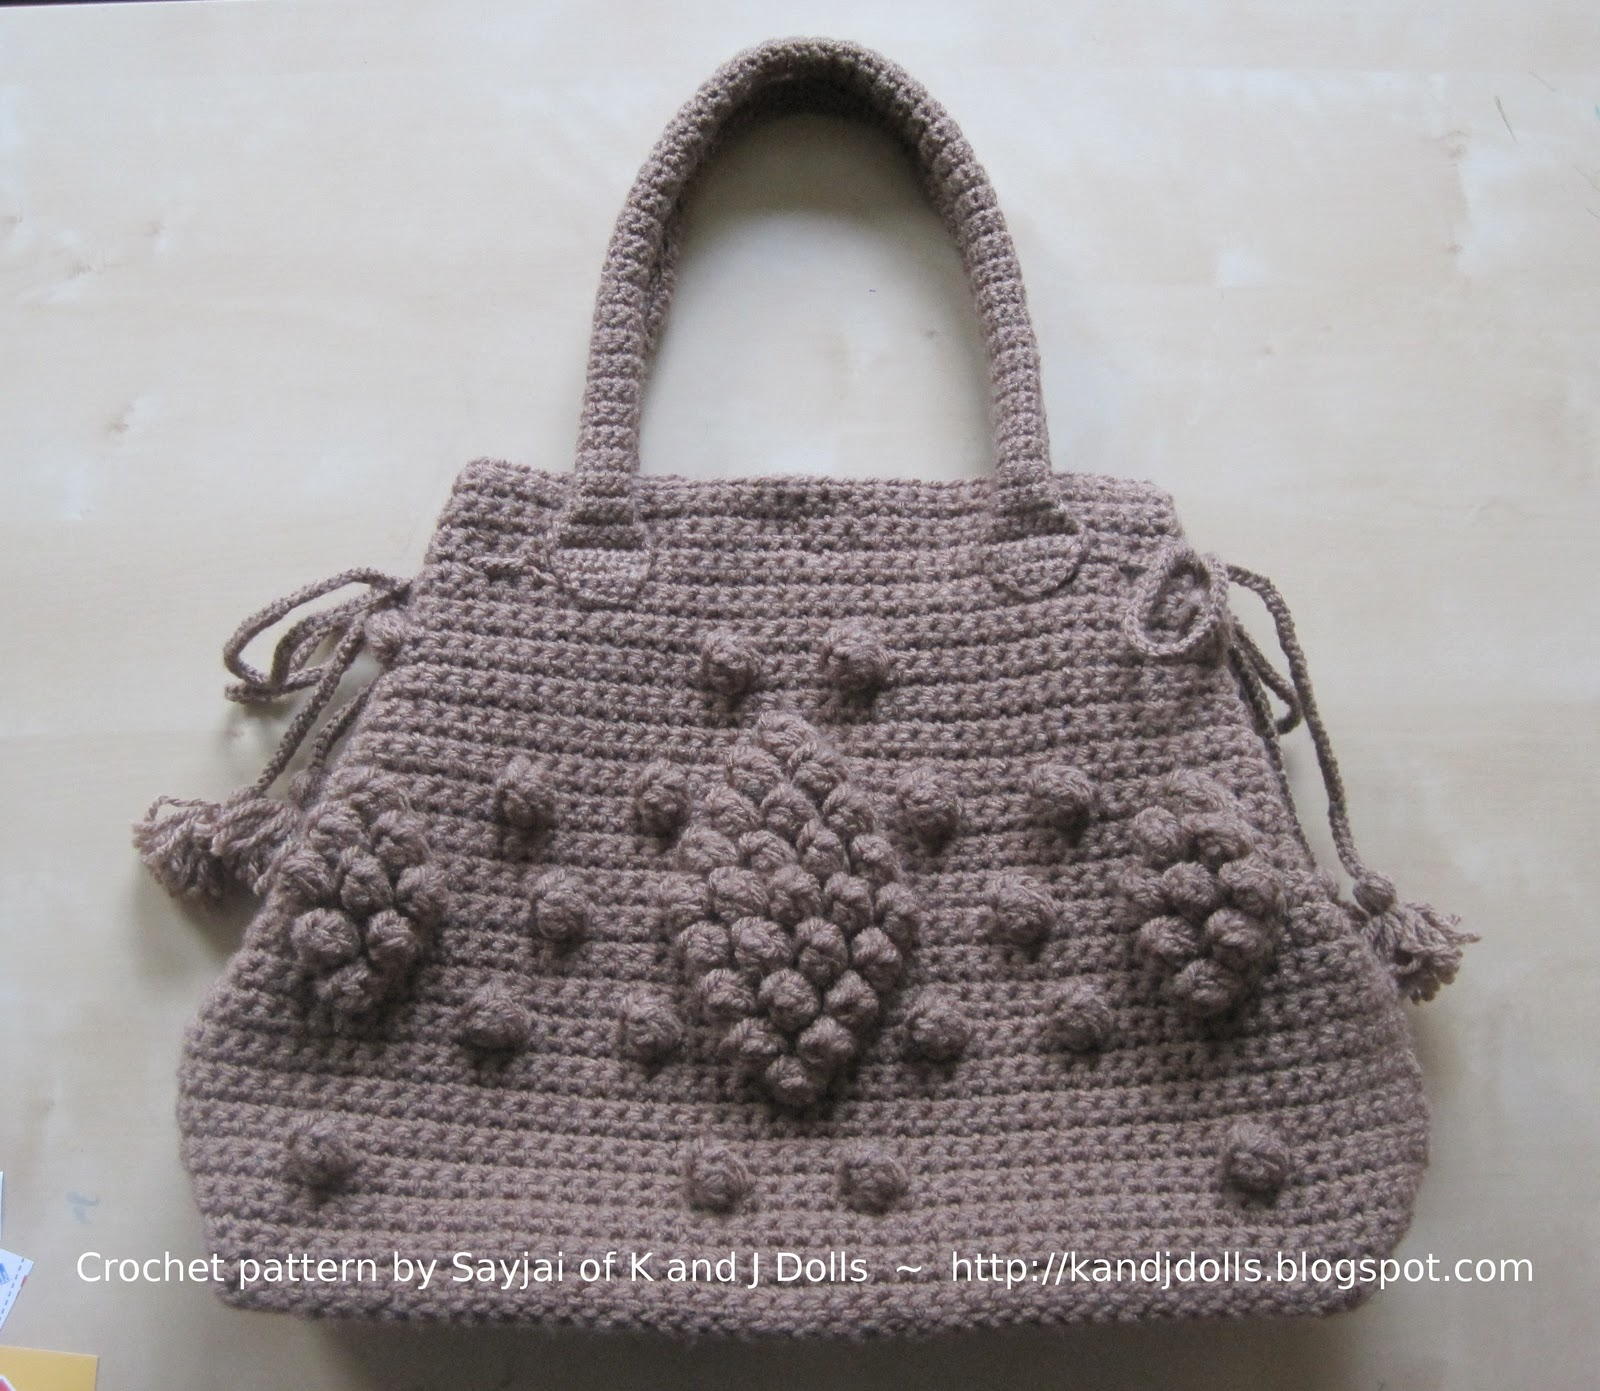 Crochet Tote Pattern : Free Crochet Grocery Tote Bag Pattern